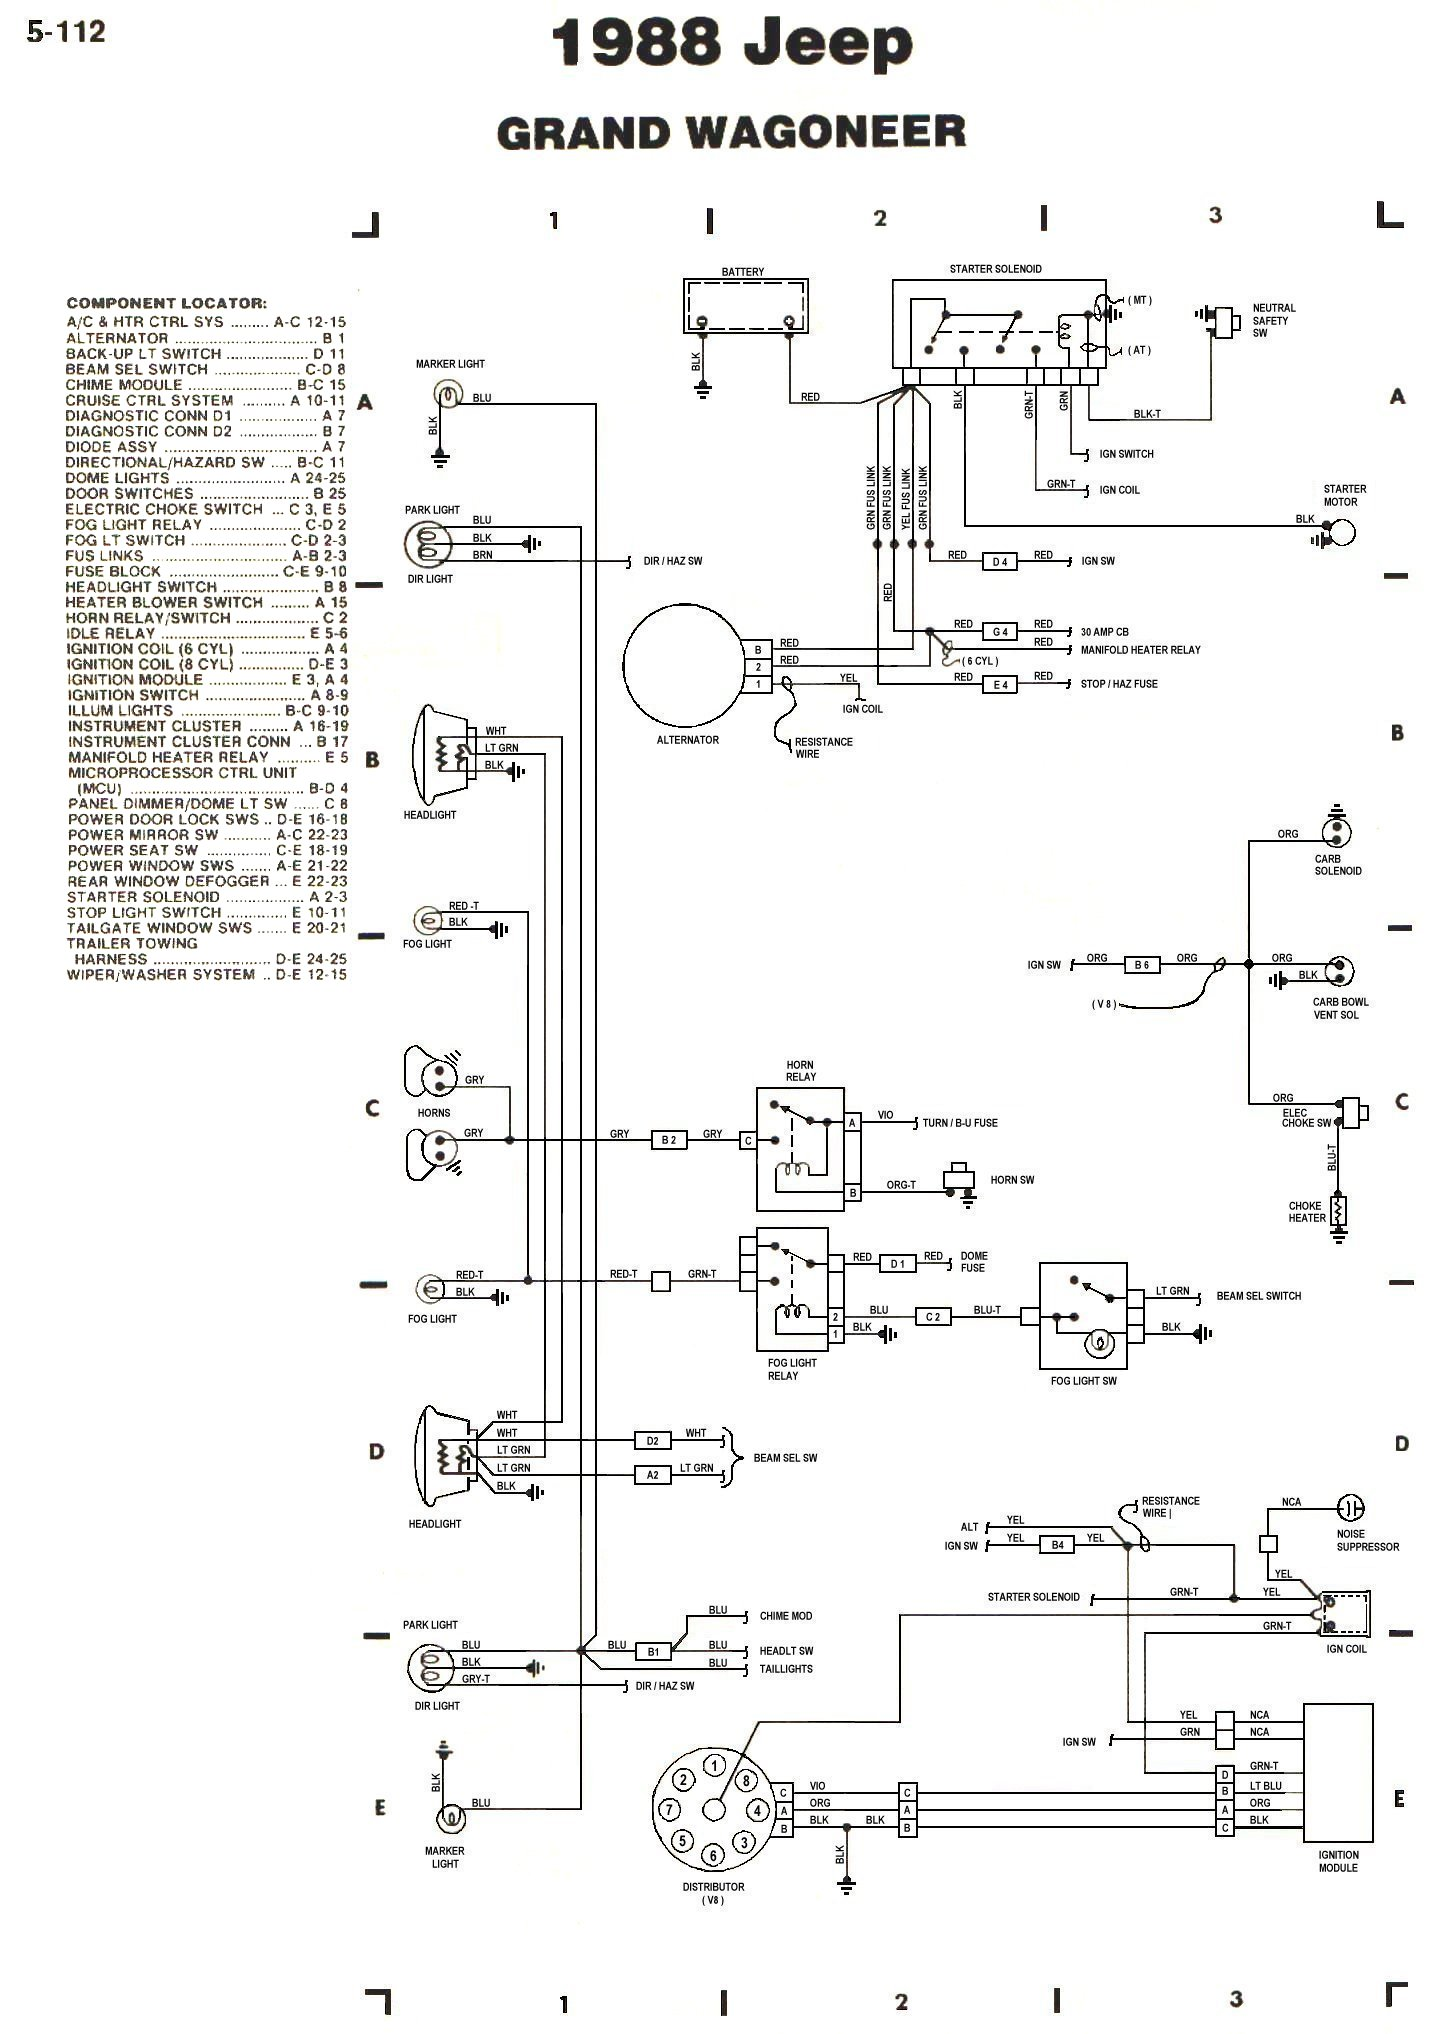 H4 Light Wiring | Wiring Diagram Database on xenon hid kit wiring diagram, 1993 dakota headlight switch diagram, h4 connector diagram, 2004 dodge durango fuse box diagram, h4 wiring with diode, ford 8n 12 volt wiring diagram, h4 wiring-diagram honda, 1990 toyota corolla head lamp diagram, 1983 toyota corolla headlight diagram, h4 plug diagram, 97 dakota tail light wiring diagram, dodge dakota headlamp assembly diagram, hid conversion kit wiring diagram, toyota tacoma headlight switch diagram, pontiac g6 parts diagram, 1993 dodge pick up headlight diagram,